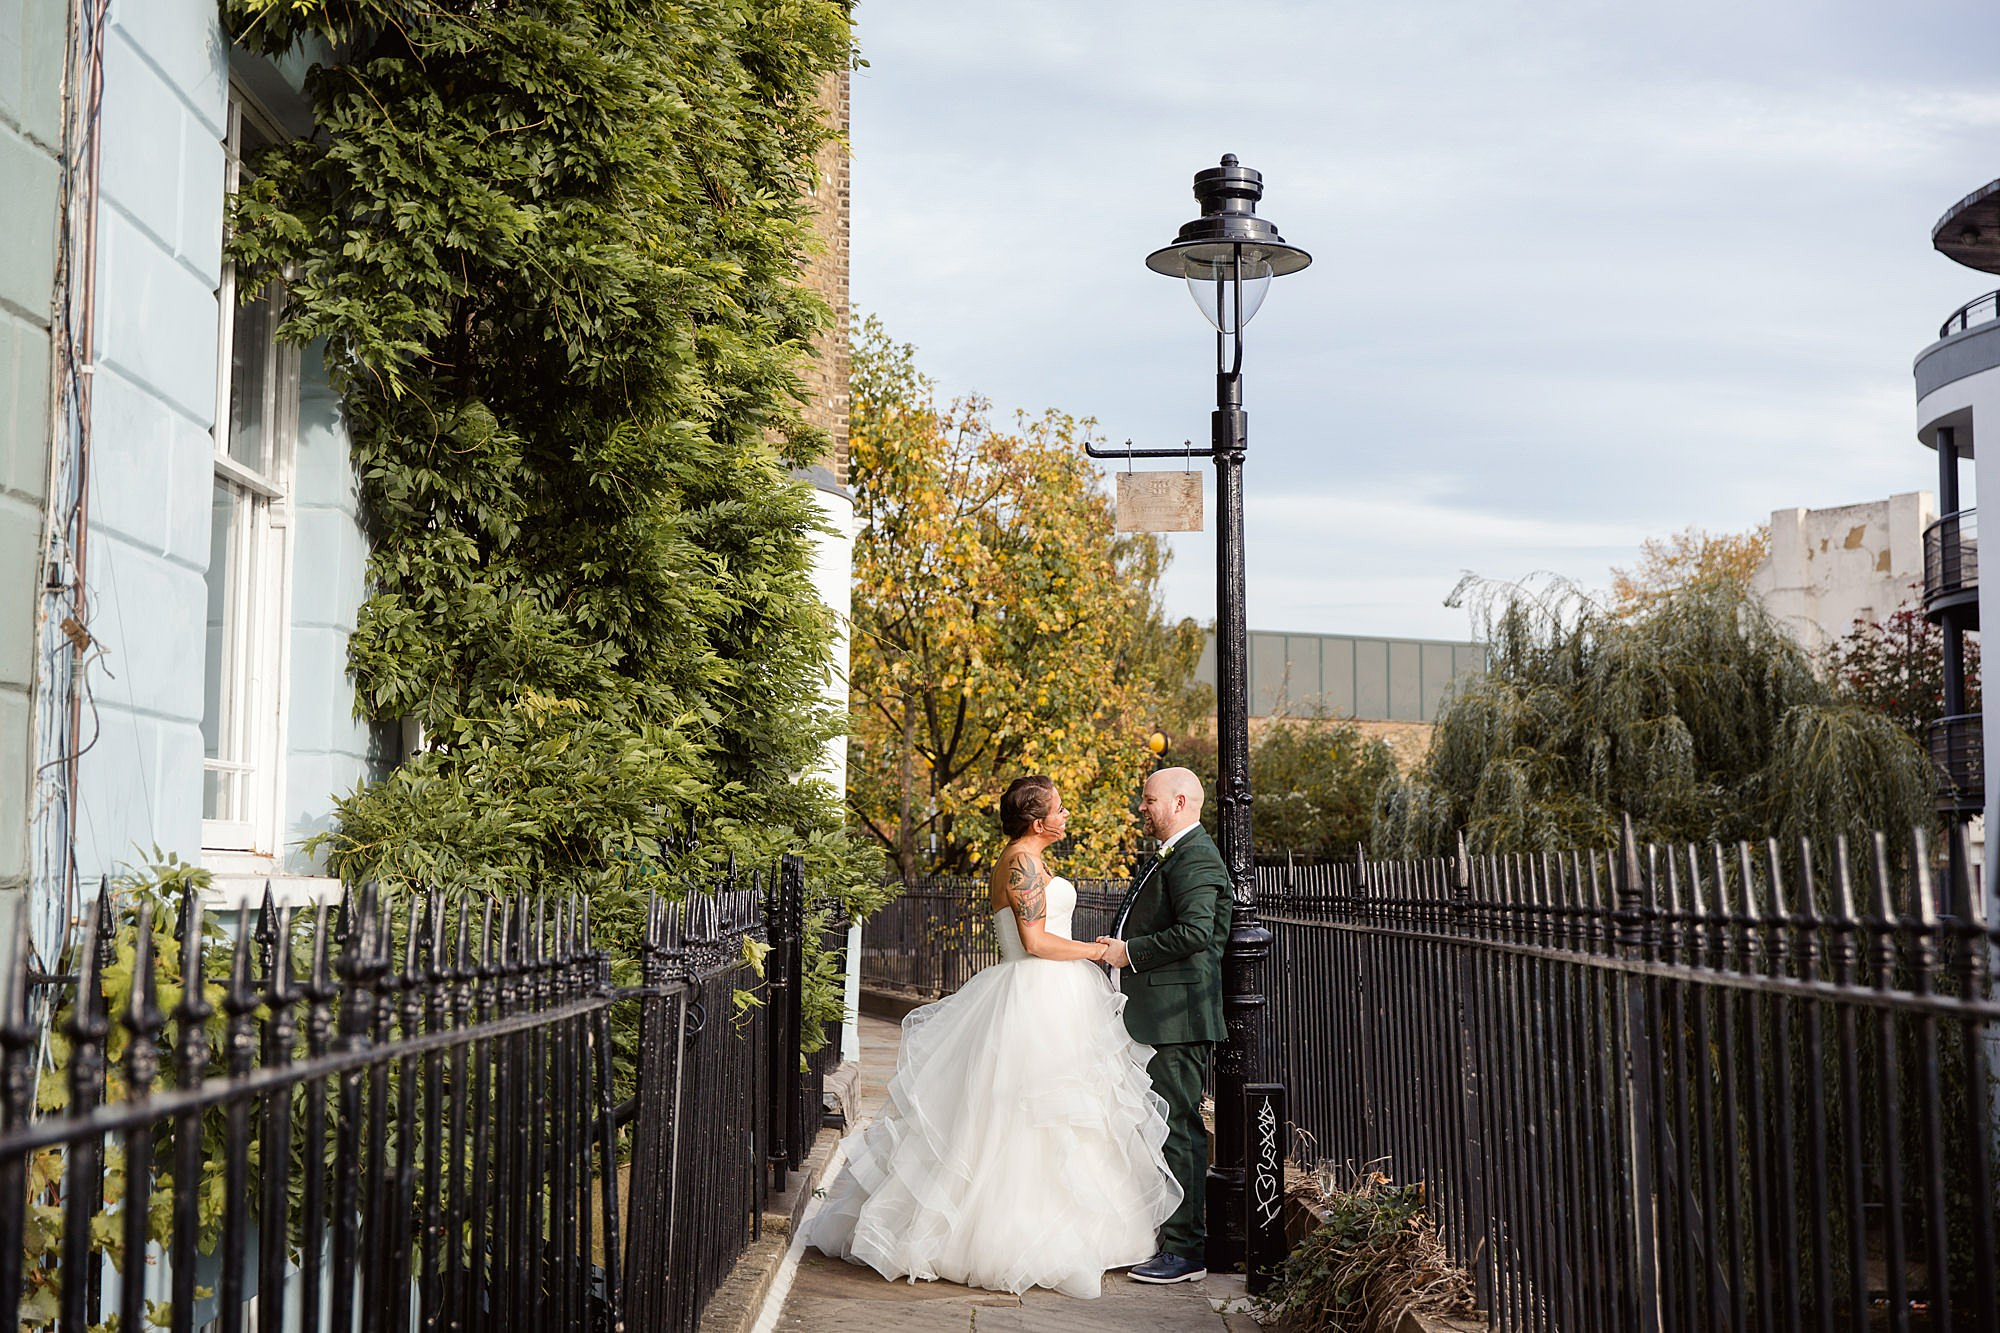 Prince albert camden wedding bride and groom by camden canal